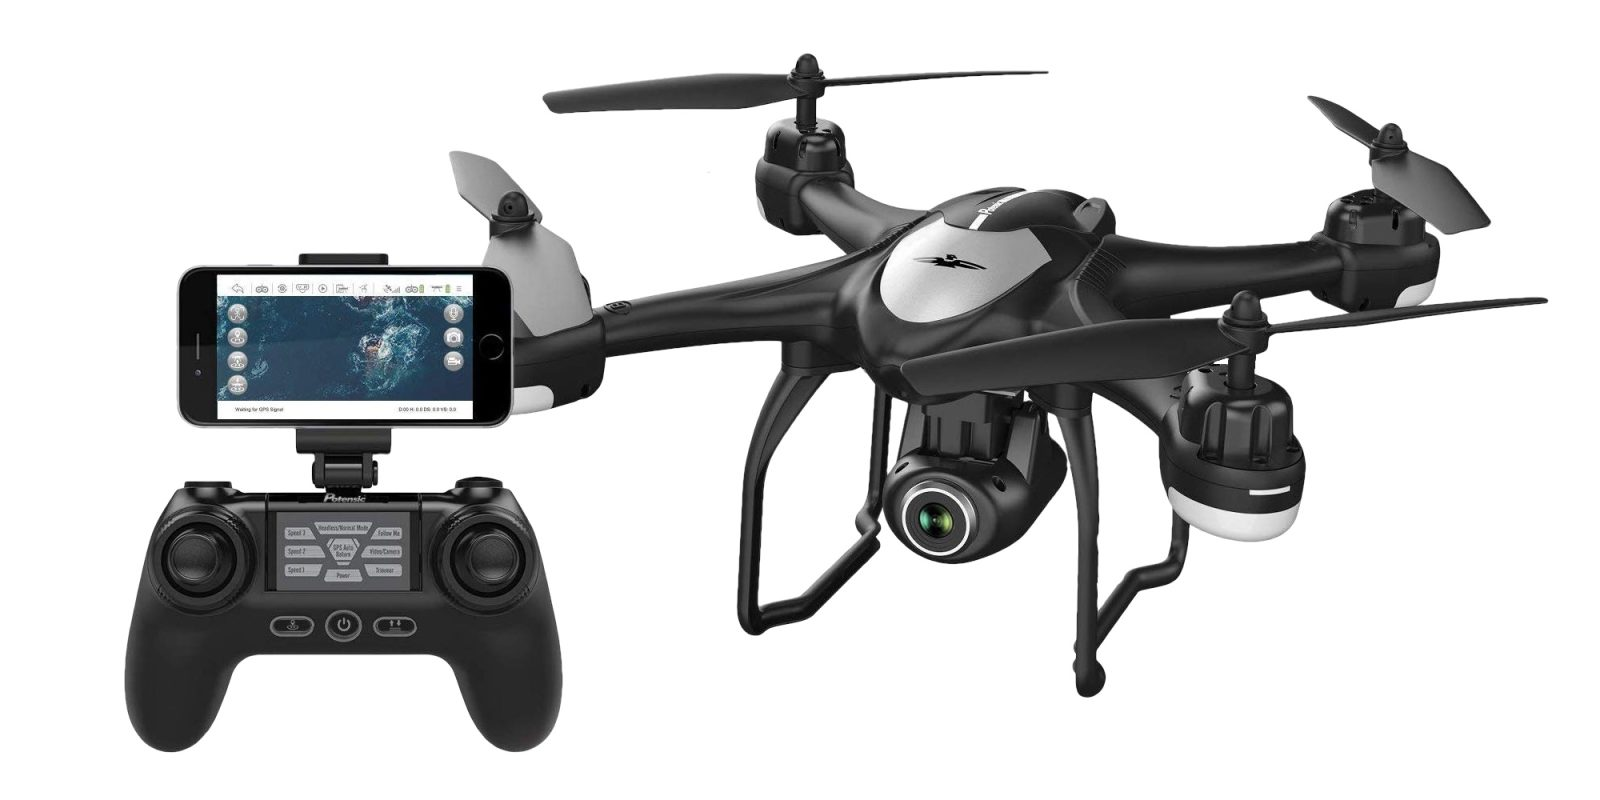 Pilot Potensic's GPS-enabled Quadcopter with 1080p cameras for $71 (50% off)